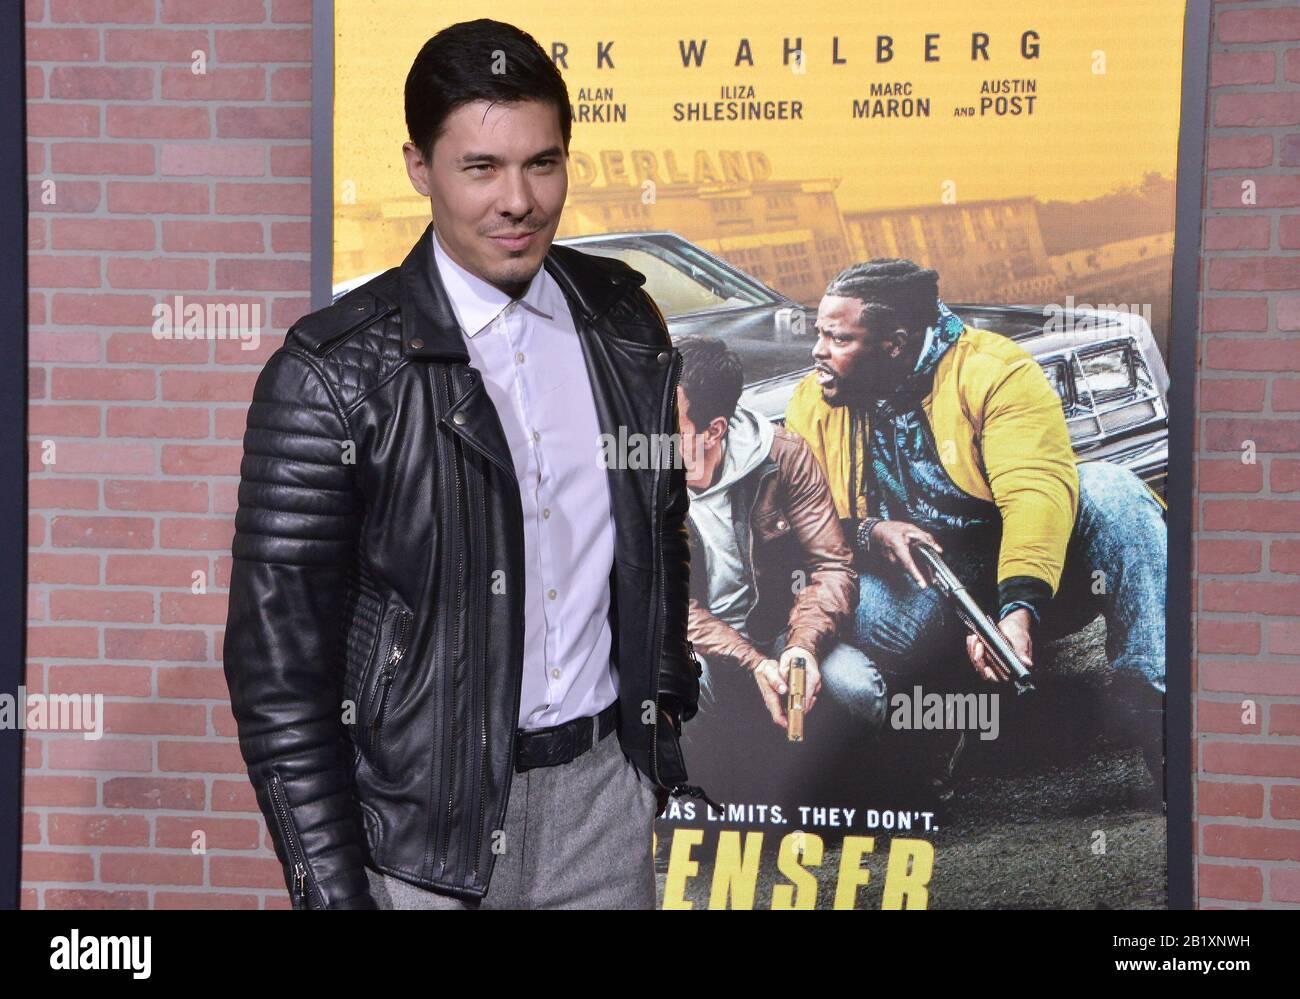 Los Angeles Usa 27th Feb 2020 Lewis Tan Arrives At The Netflix S Spenser Confidential Premiere Held At The Regency Village Theatre In Westwood Ca On Thursday February 27 2020 Photo By Sthanlee